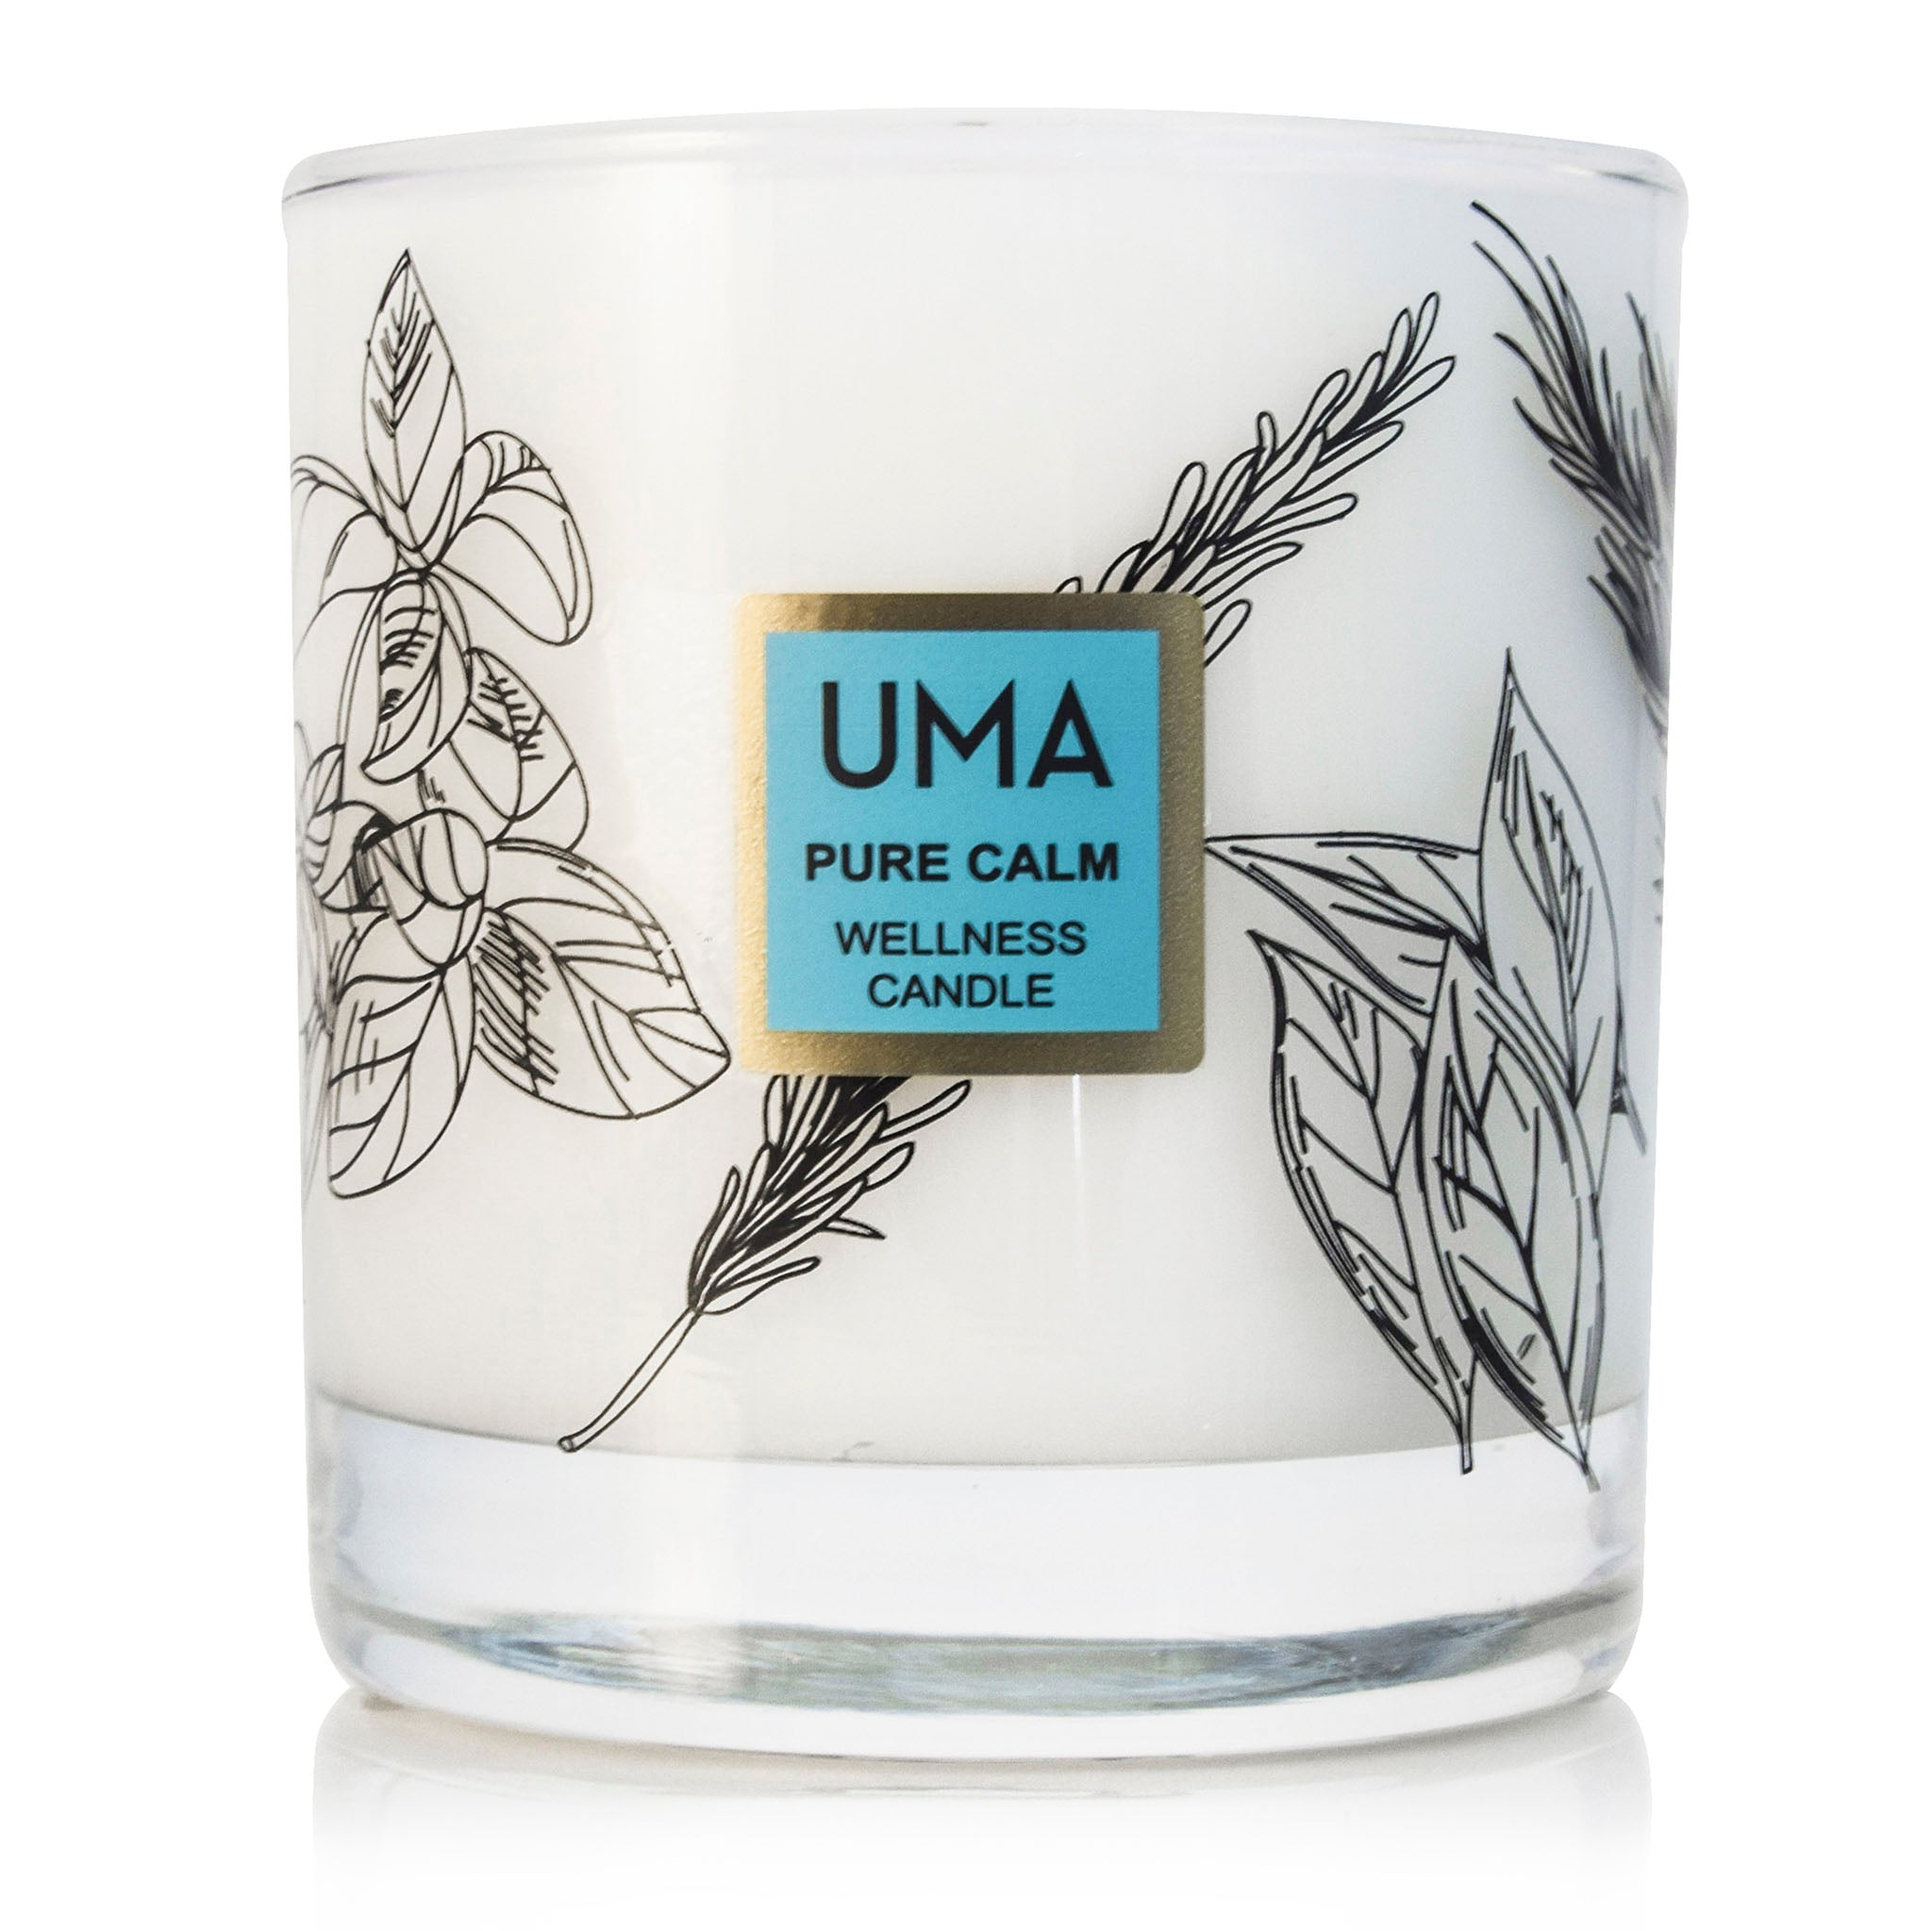 Pure Calm Wellness Candle